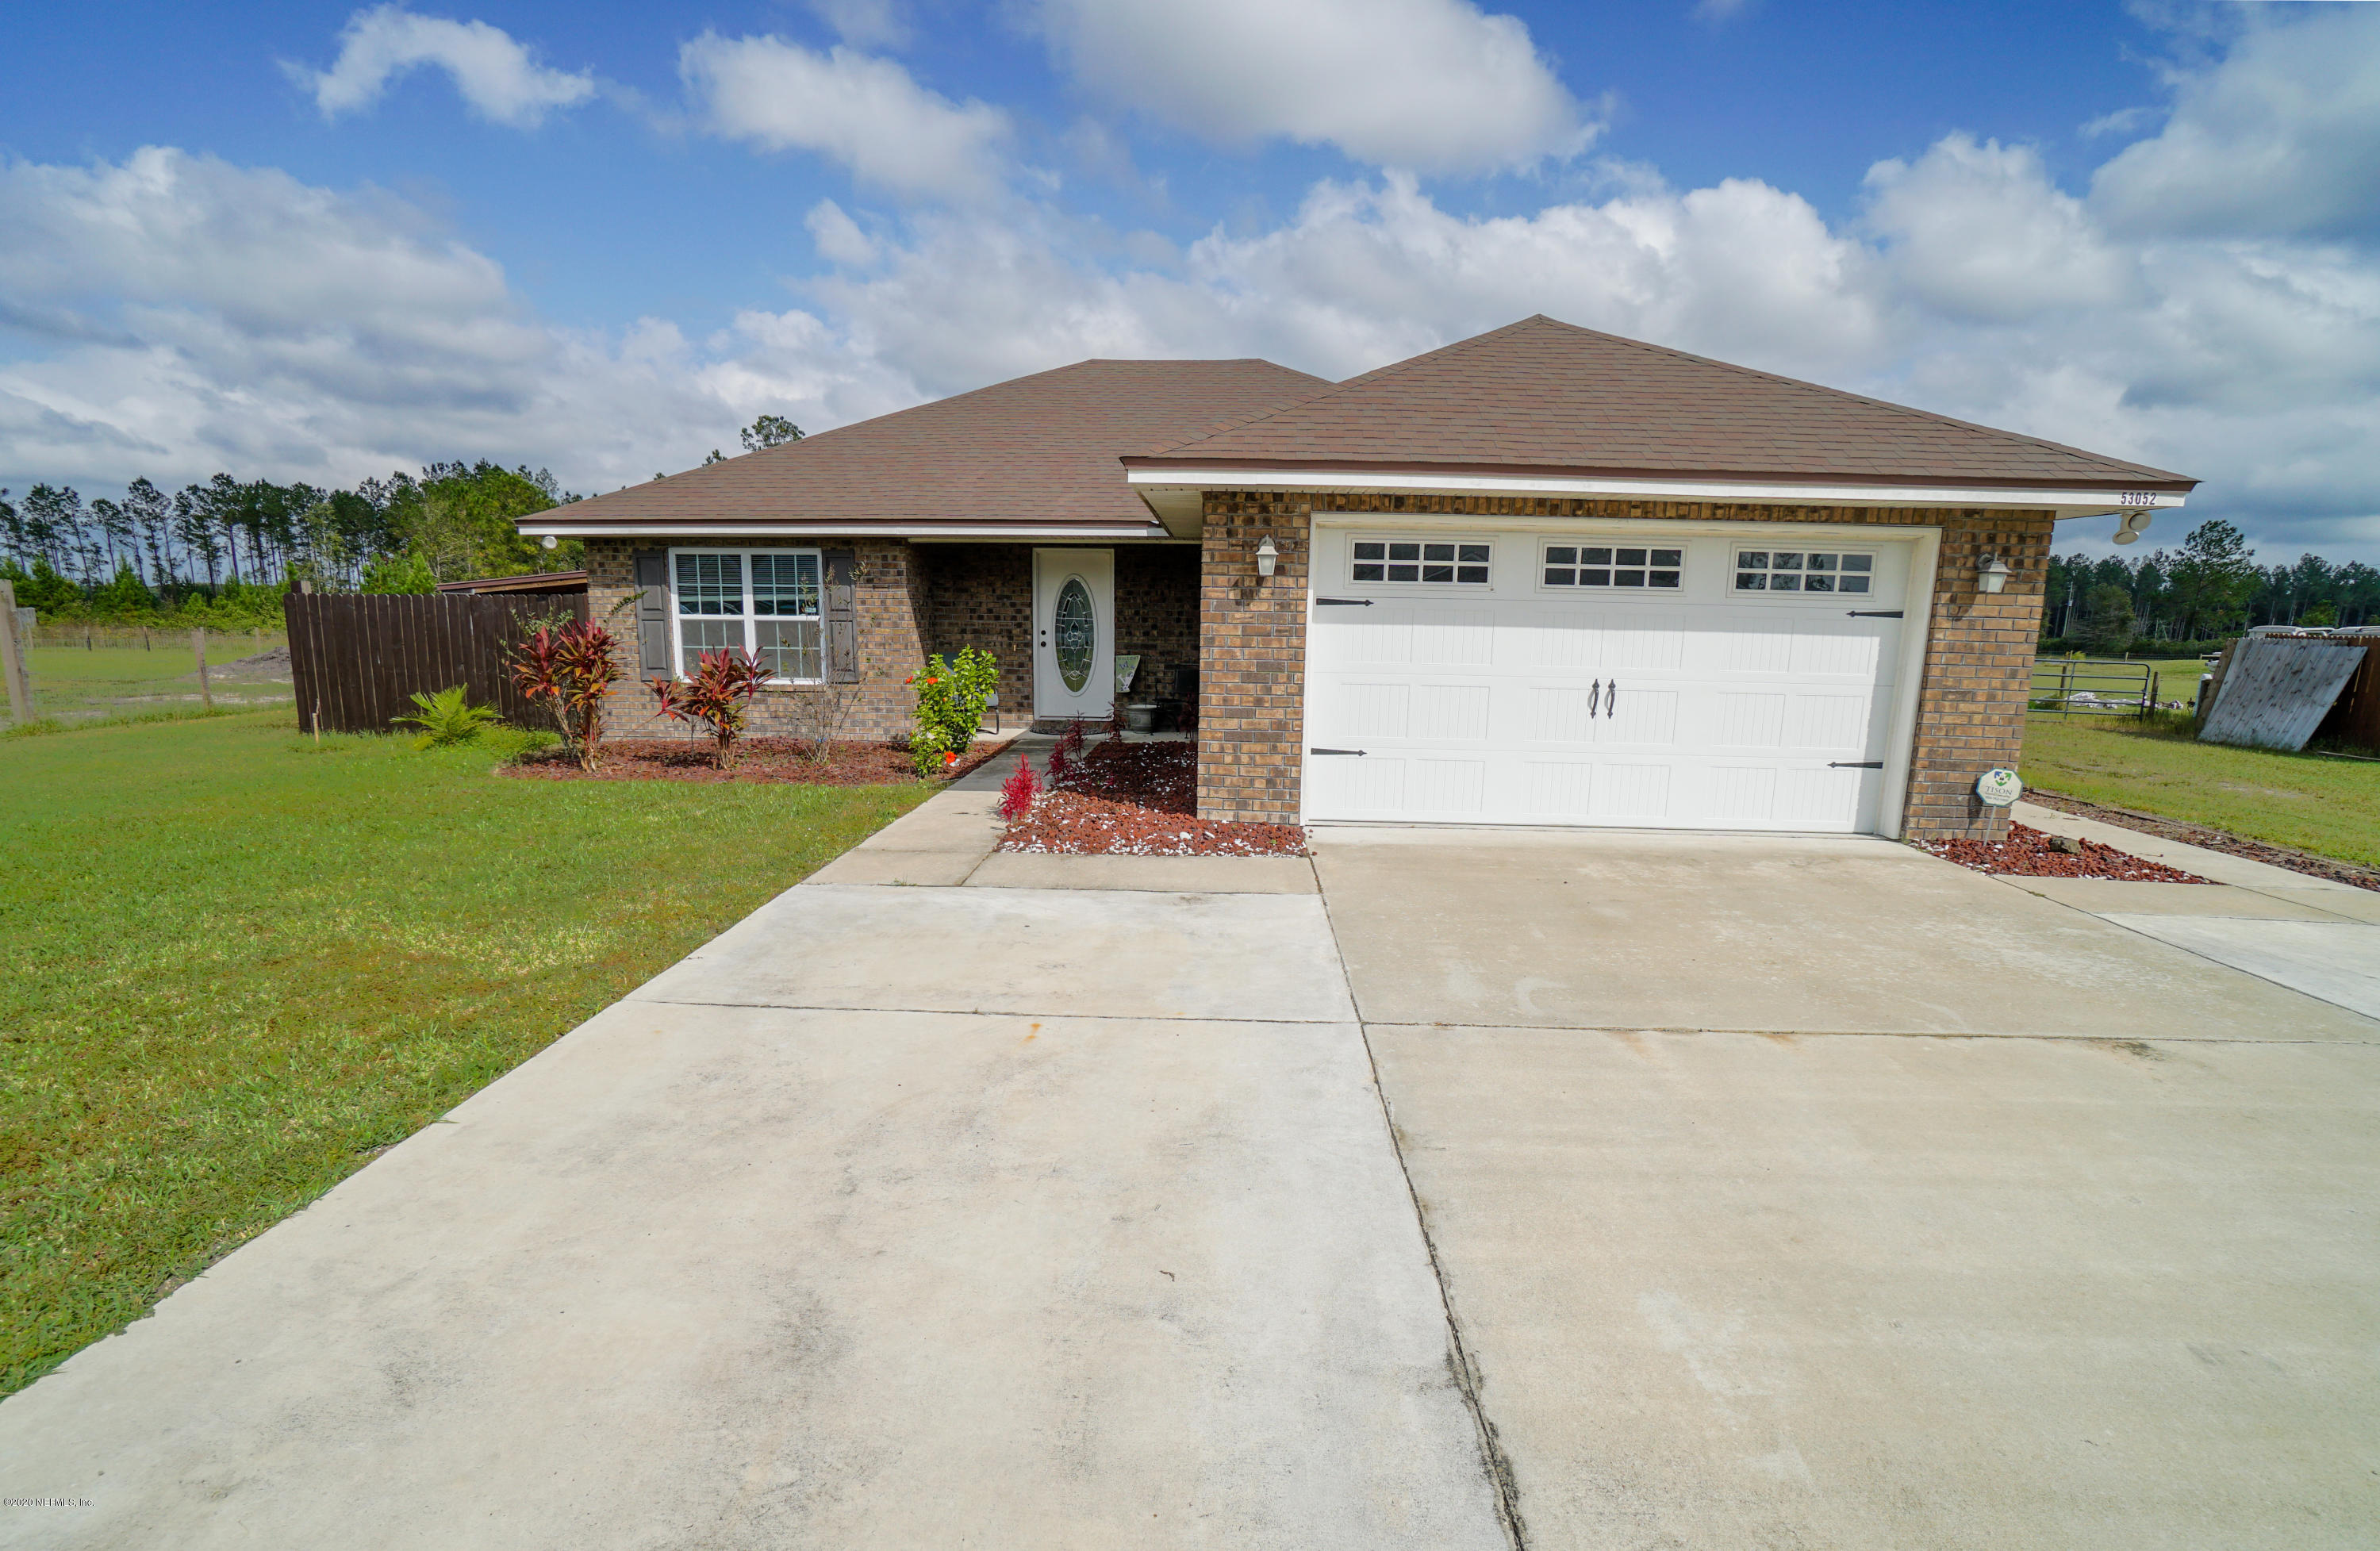 53052 EQUESTRIAN, CALLAHAN, FLORIDA 32011, 3 Bedrooms Bedrooms, ,2 BathroomsBathrooms,Residential,For sale,EQUESTRIAN,1081600